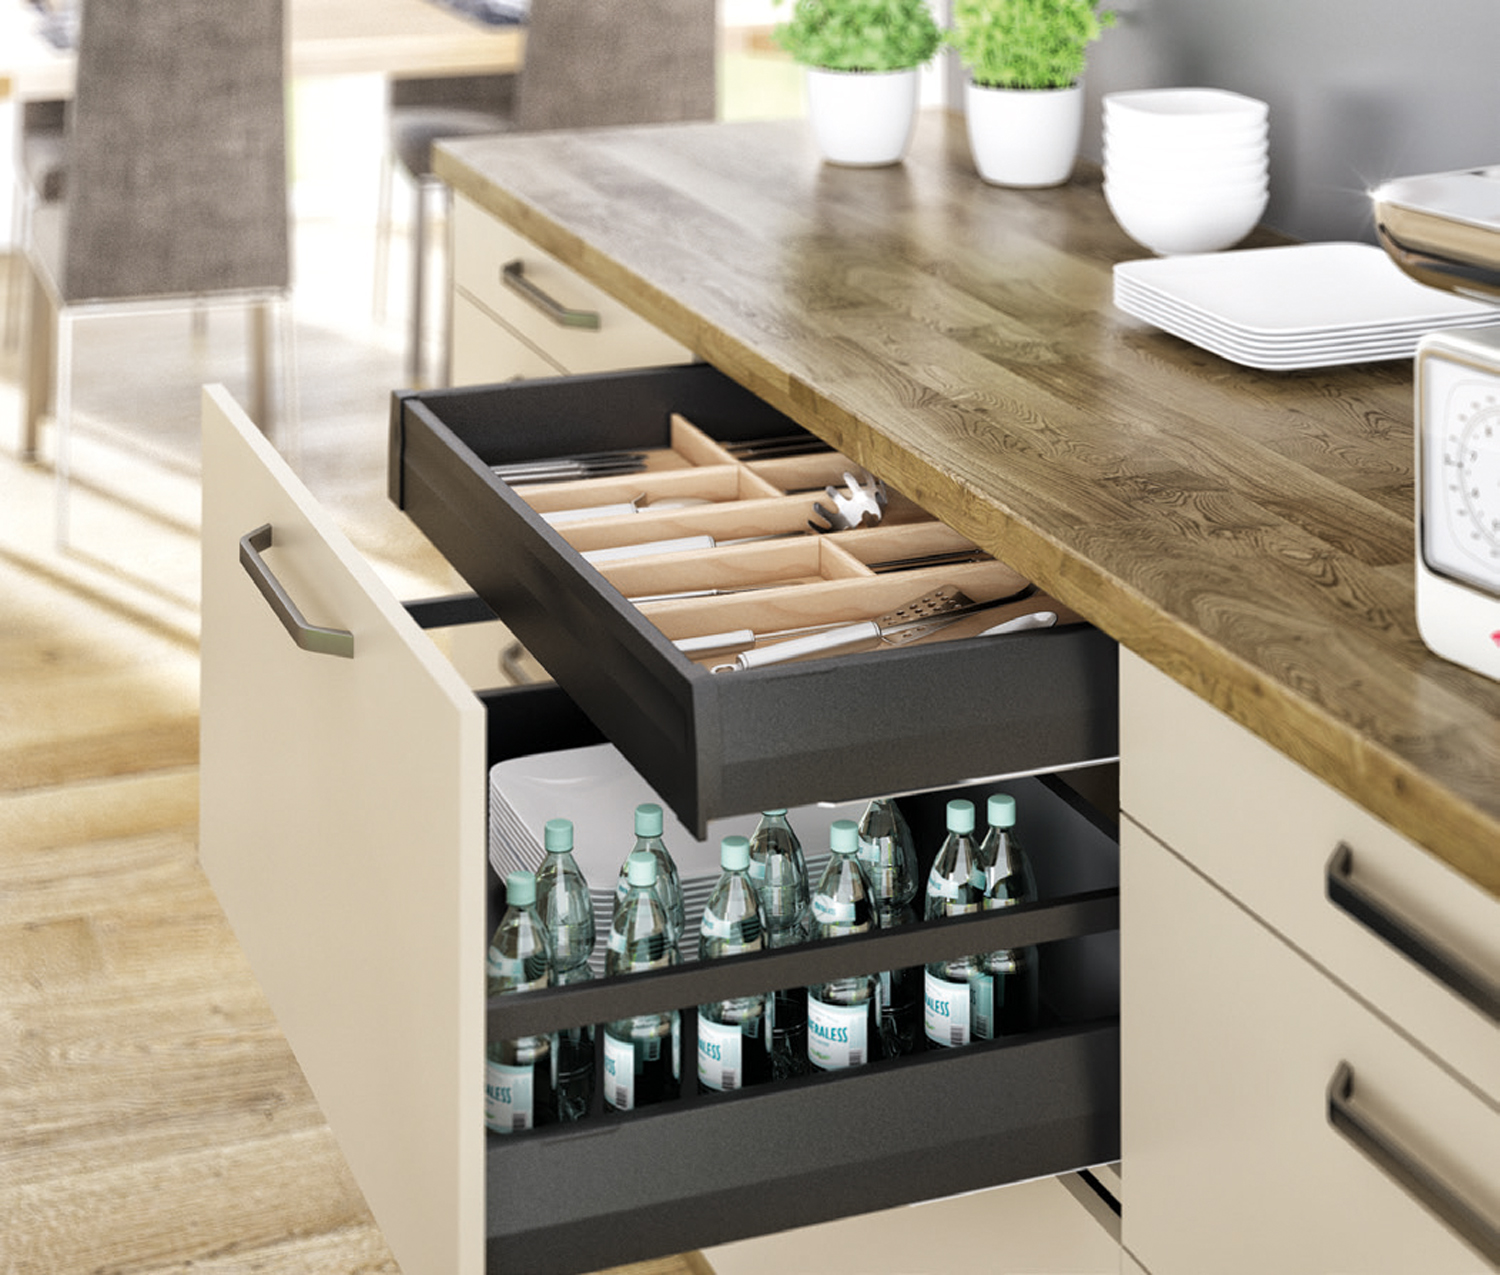 Häfele's Drawer Range